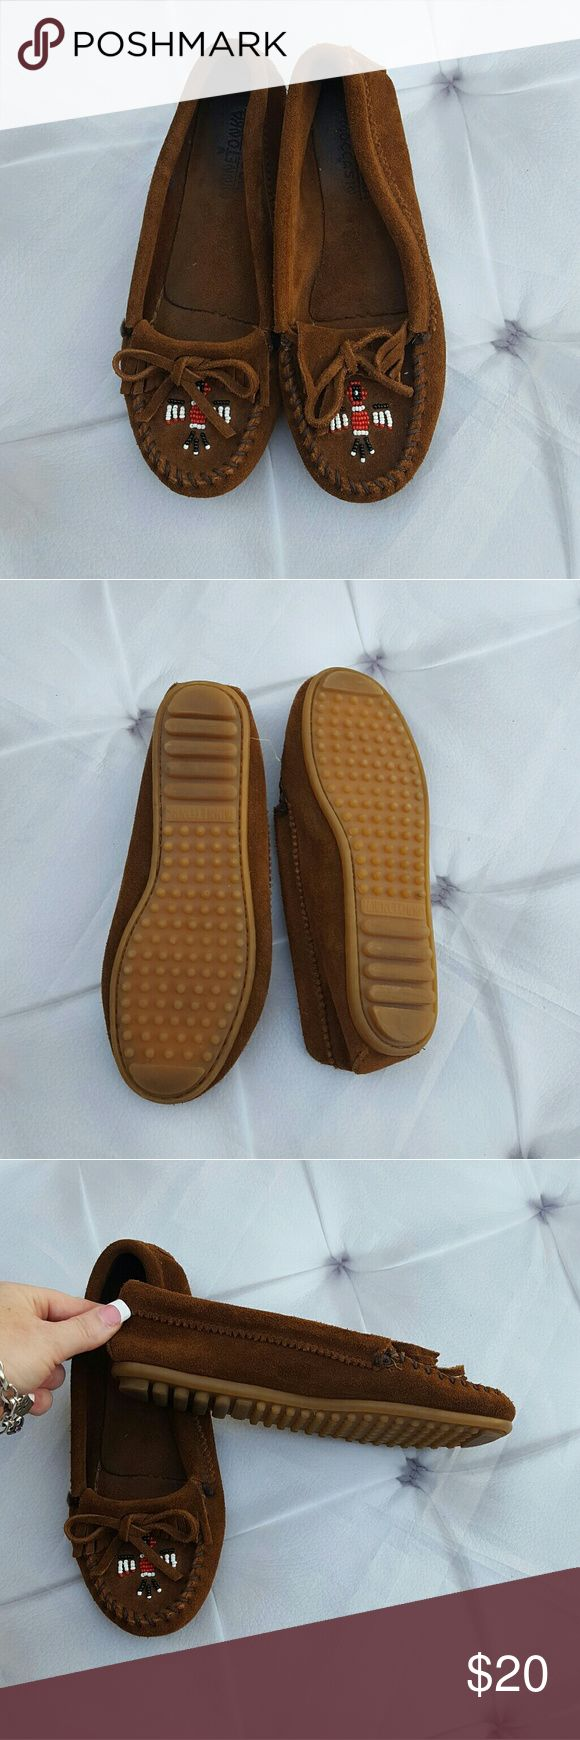 Minnetonka Beaded Comfy Casual Mocassins Size 6 Minnetonka super comfy and casual leather mocassins in great condition. Beadwork tribal design on the toe with finge and leather ties. Tagged size 6.  Runs true to size. Inner sole has some wear but overall in great condition.   #ravenkittystyle #mocassins #minnetonka #tan #leather #casual #flats #size6 #womens #beaded #tribal #fringe Minnetonka Shoes Moccasins